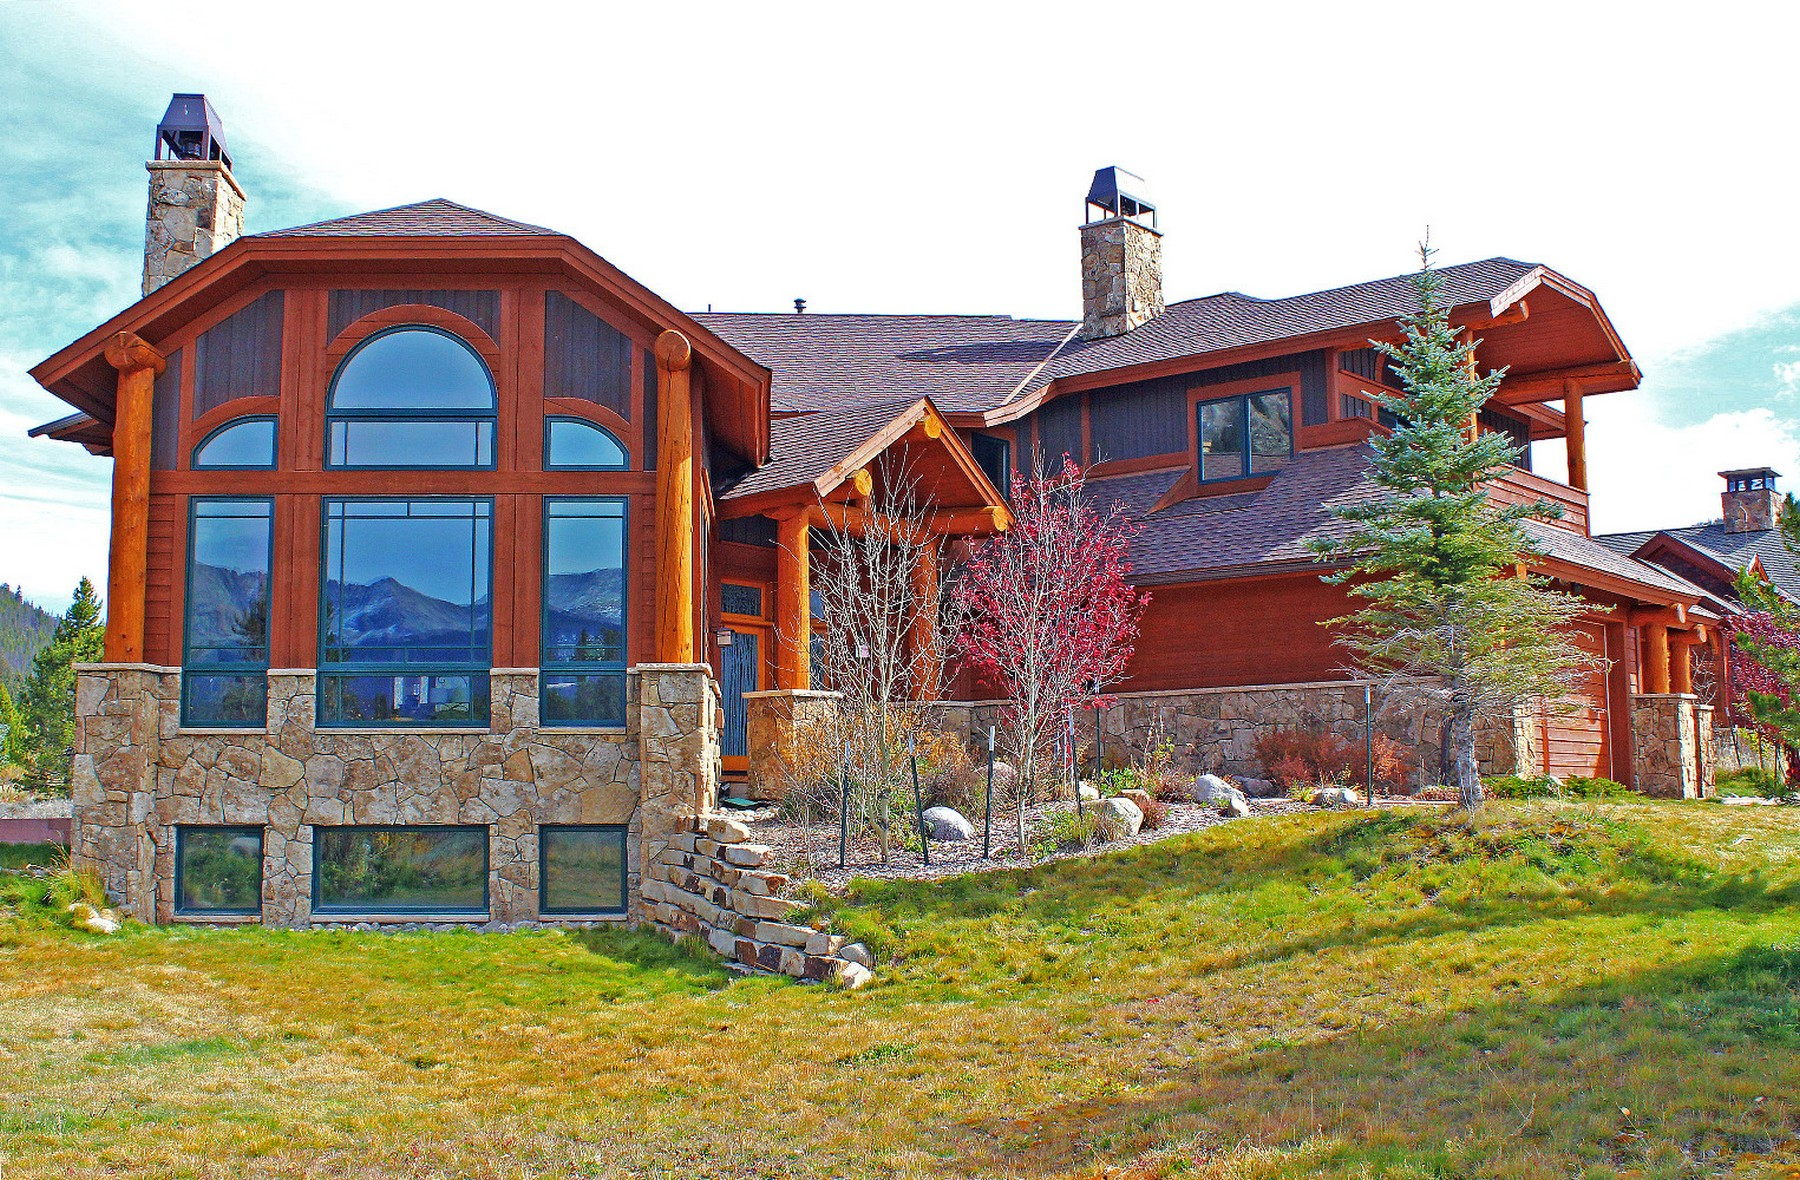 Single Family Home for Sale at Highlands Luxury with Stunning Views From Almost Every Room 46 Buffalo Terrace Breckenridge, Colorado, 80424 United States